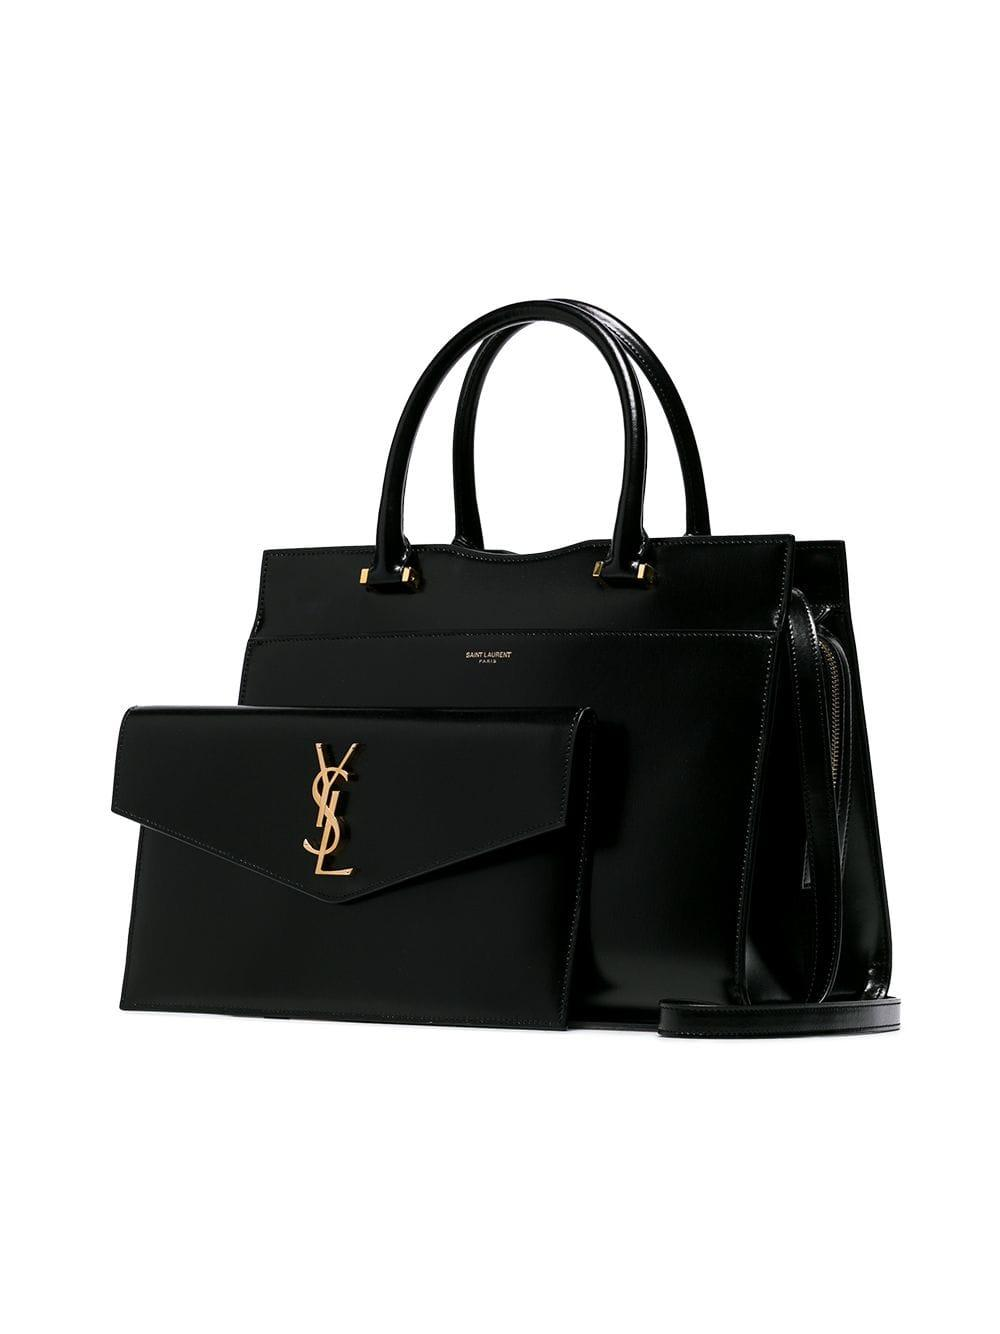 Saint Laurent - Black Medium Uptown Tote Bag - Lyst. View fullscreen 0a0218f01e2ae